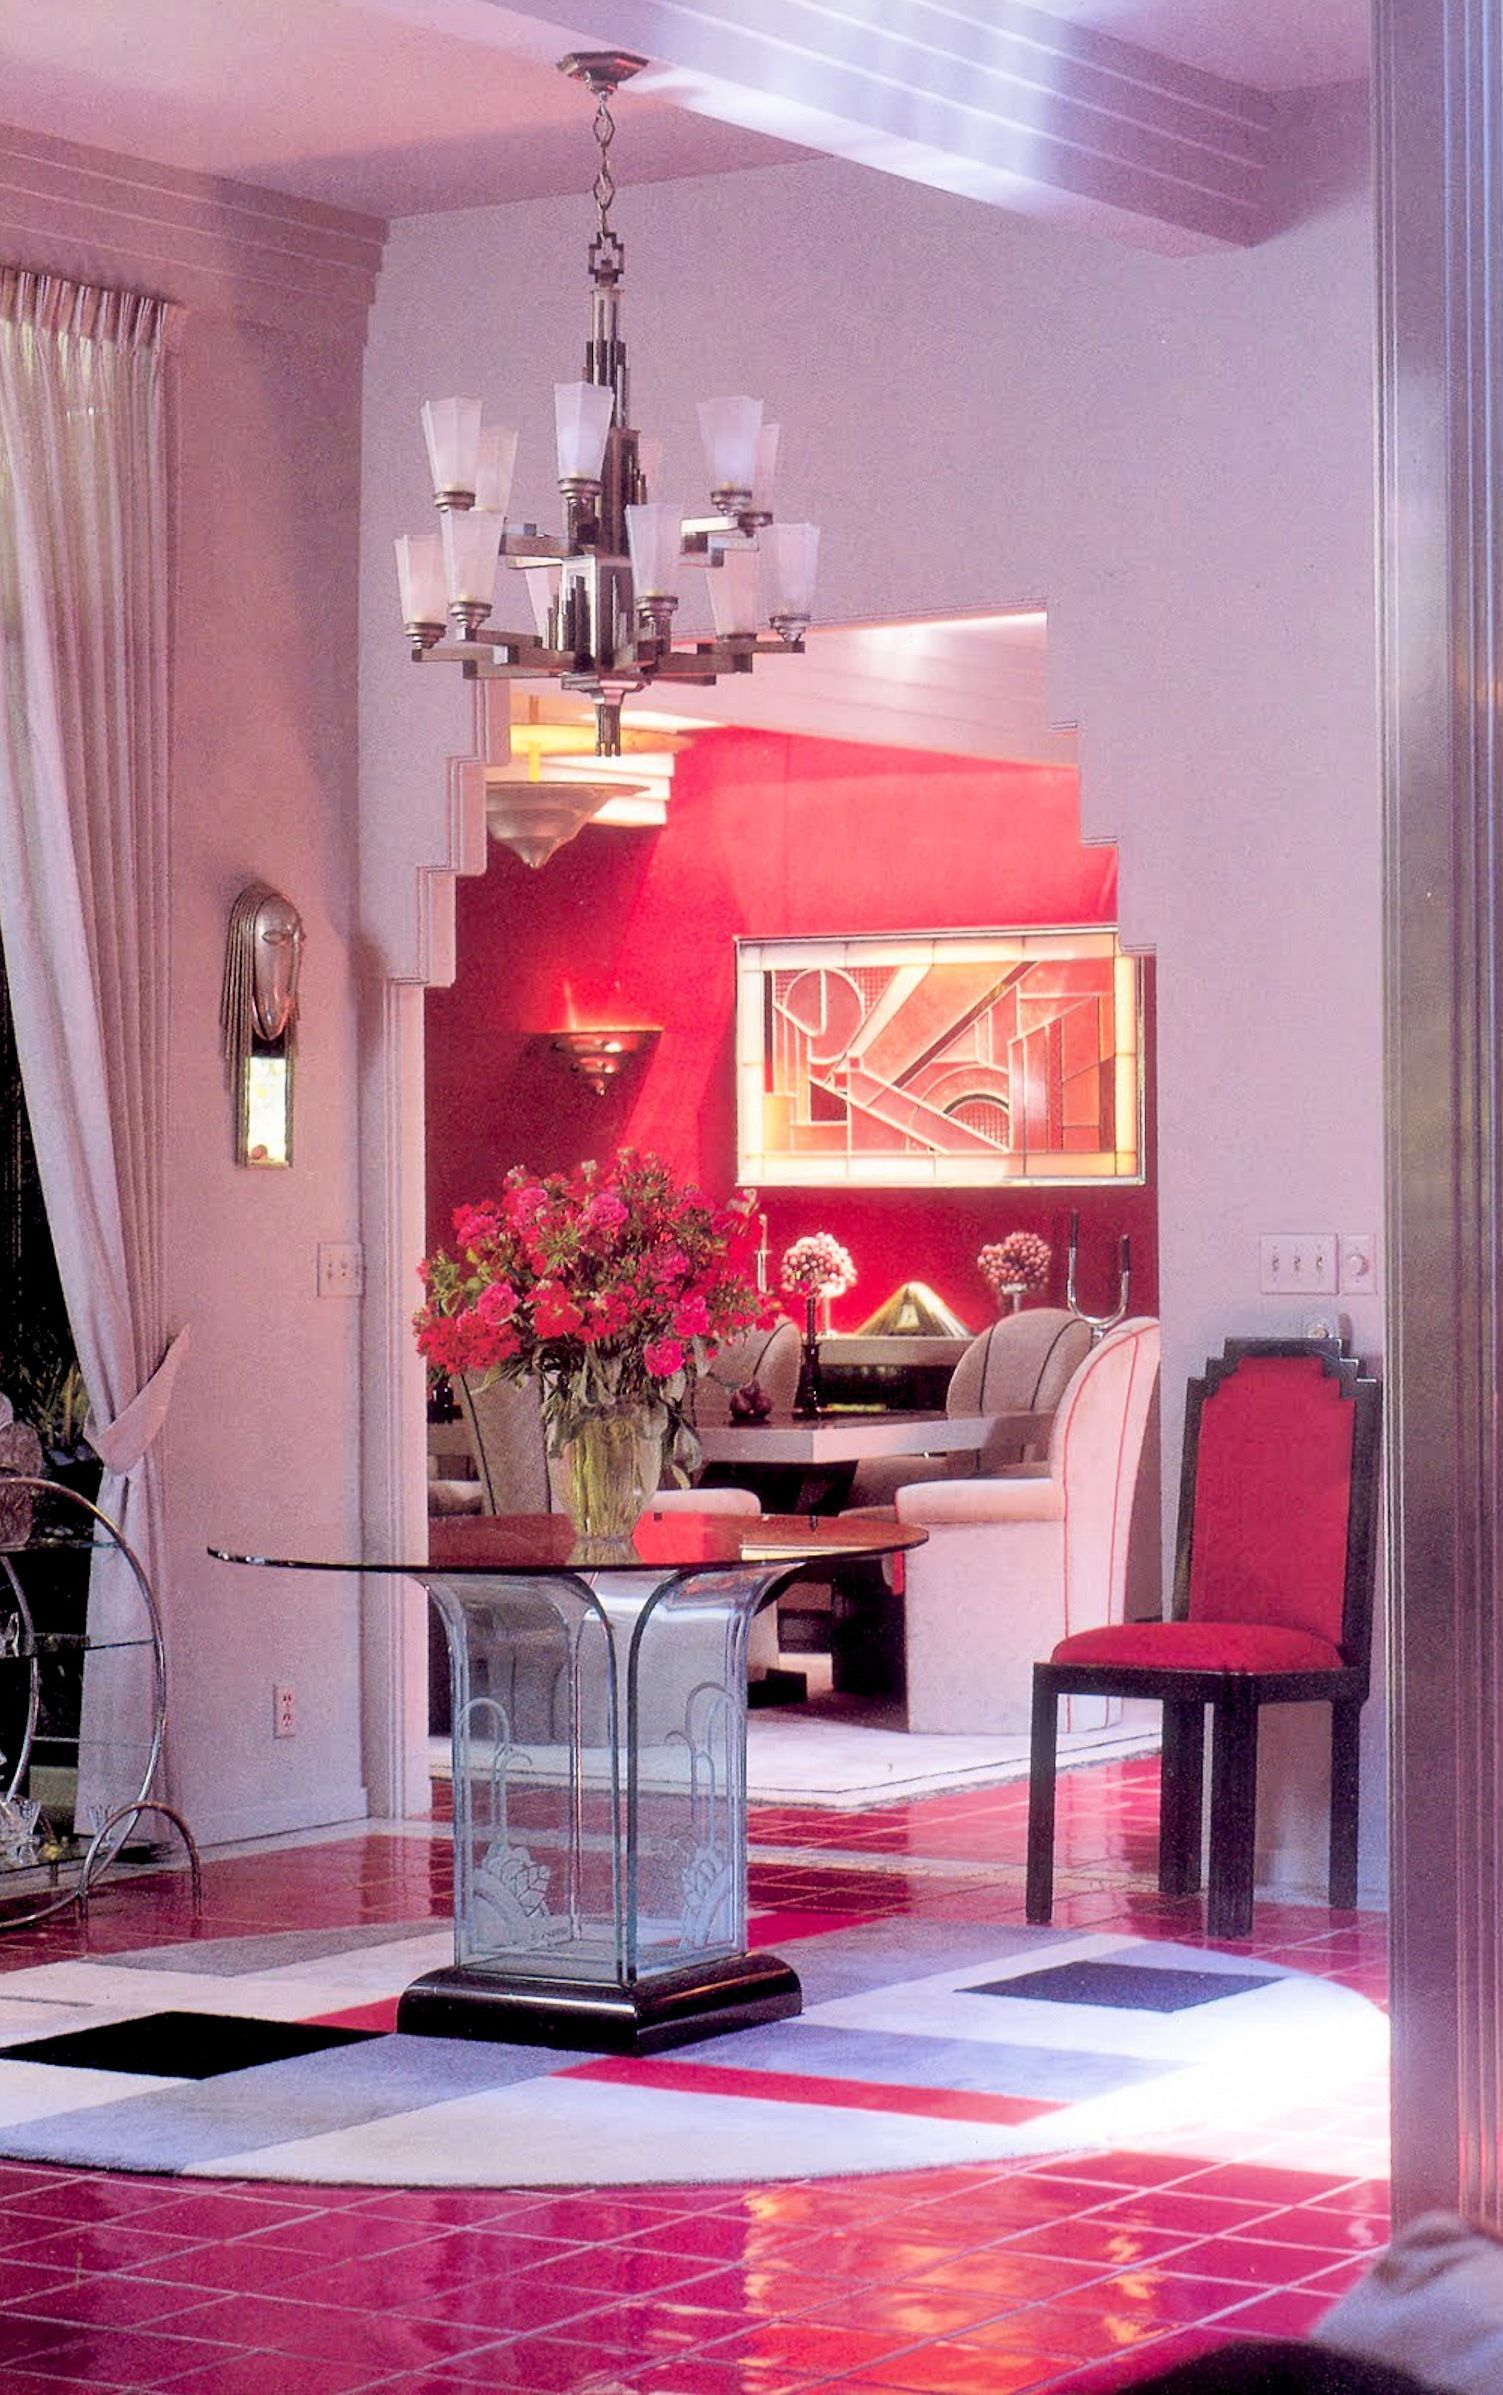 art deco interior - barbra streisand art deco collection fills the